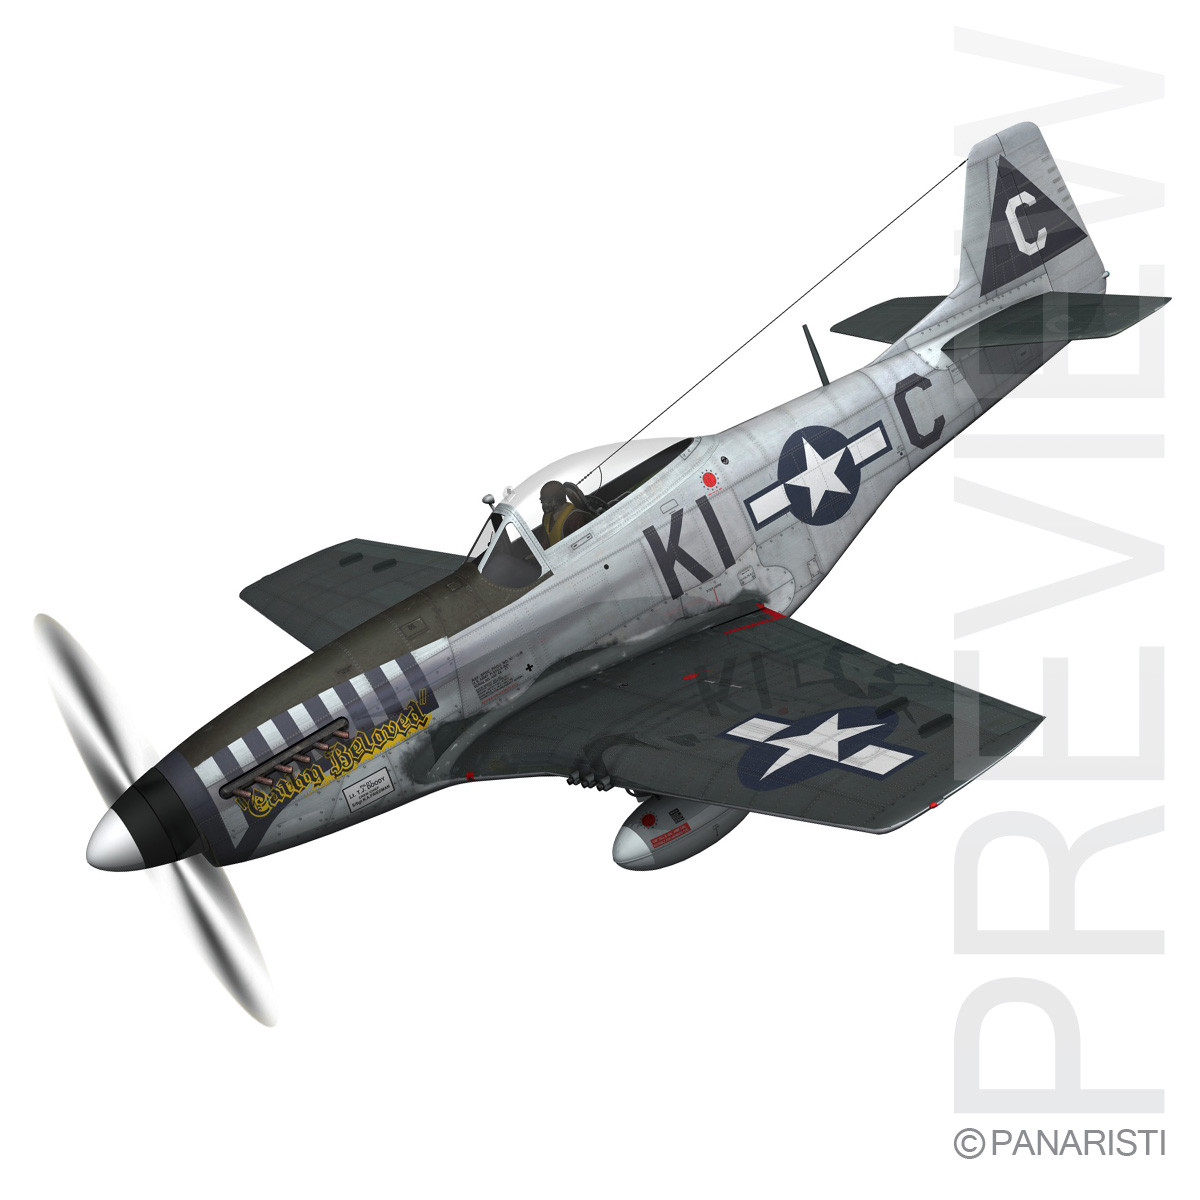 North American P-51D Mustang - Cathy Beloved